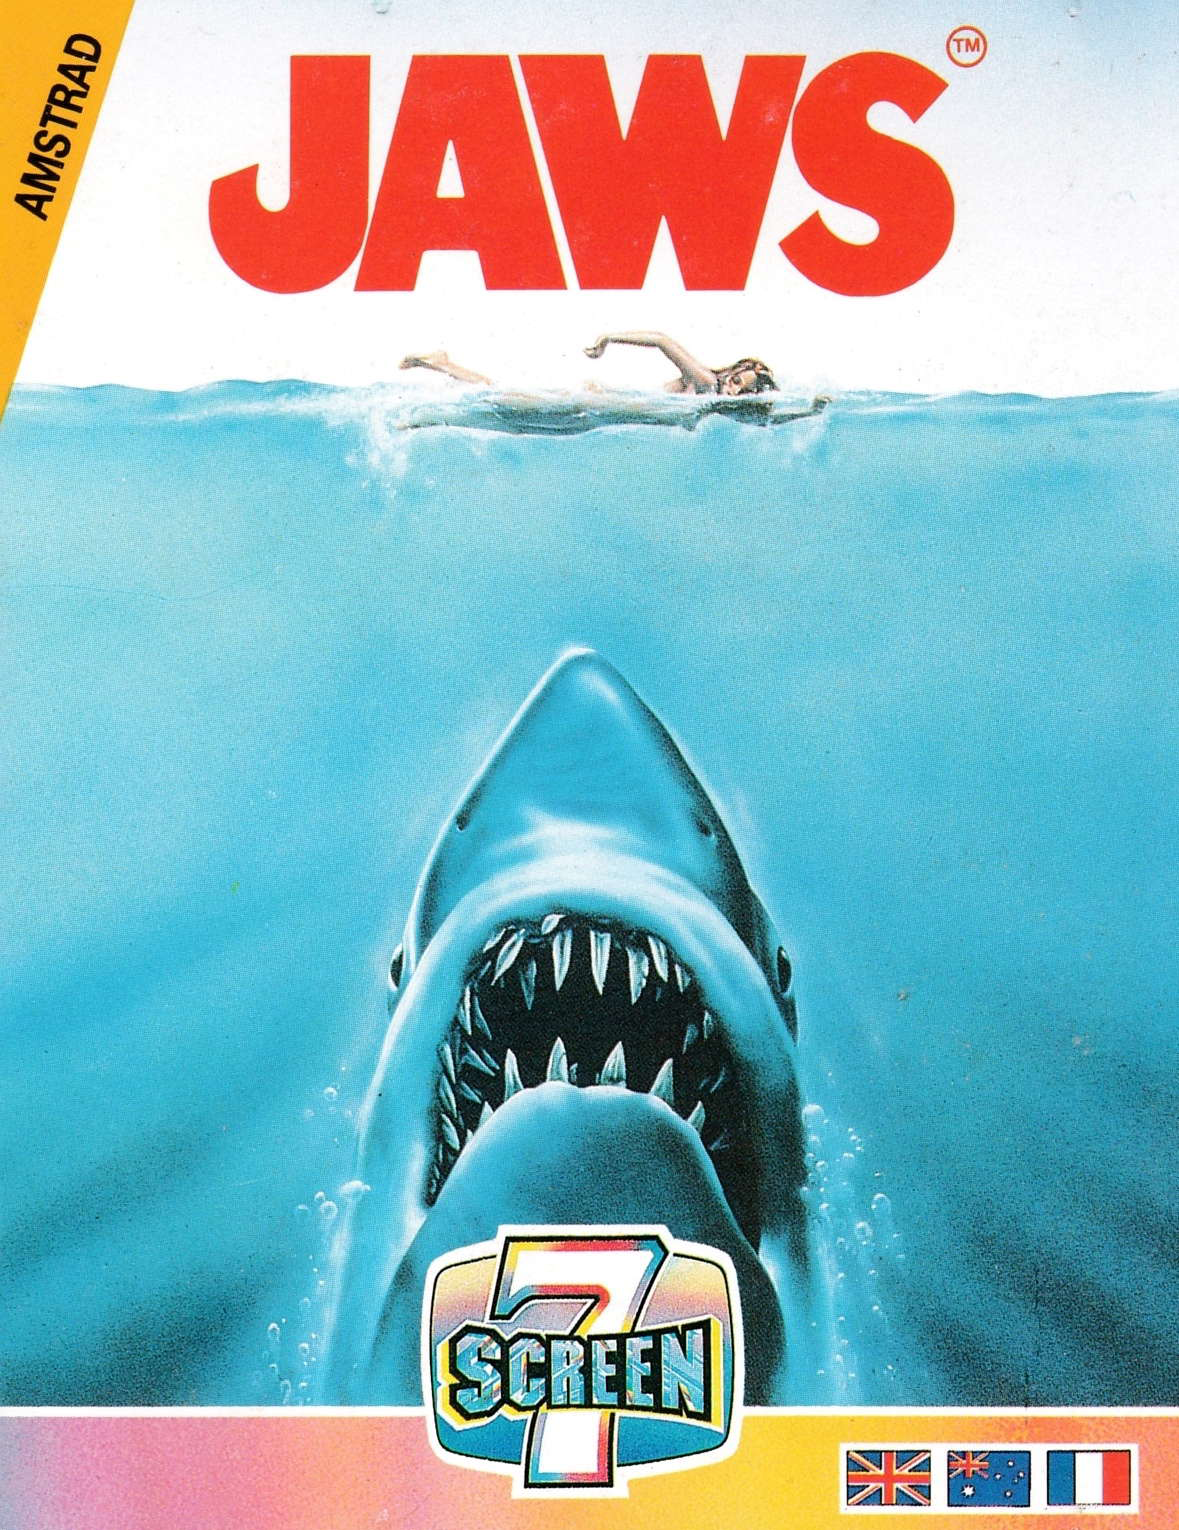 cover of the Amstrad CPC game Jaws  by GameBase CPC